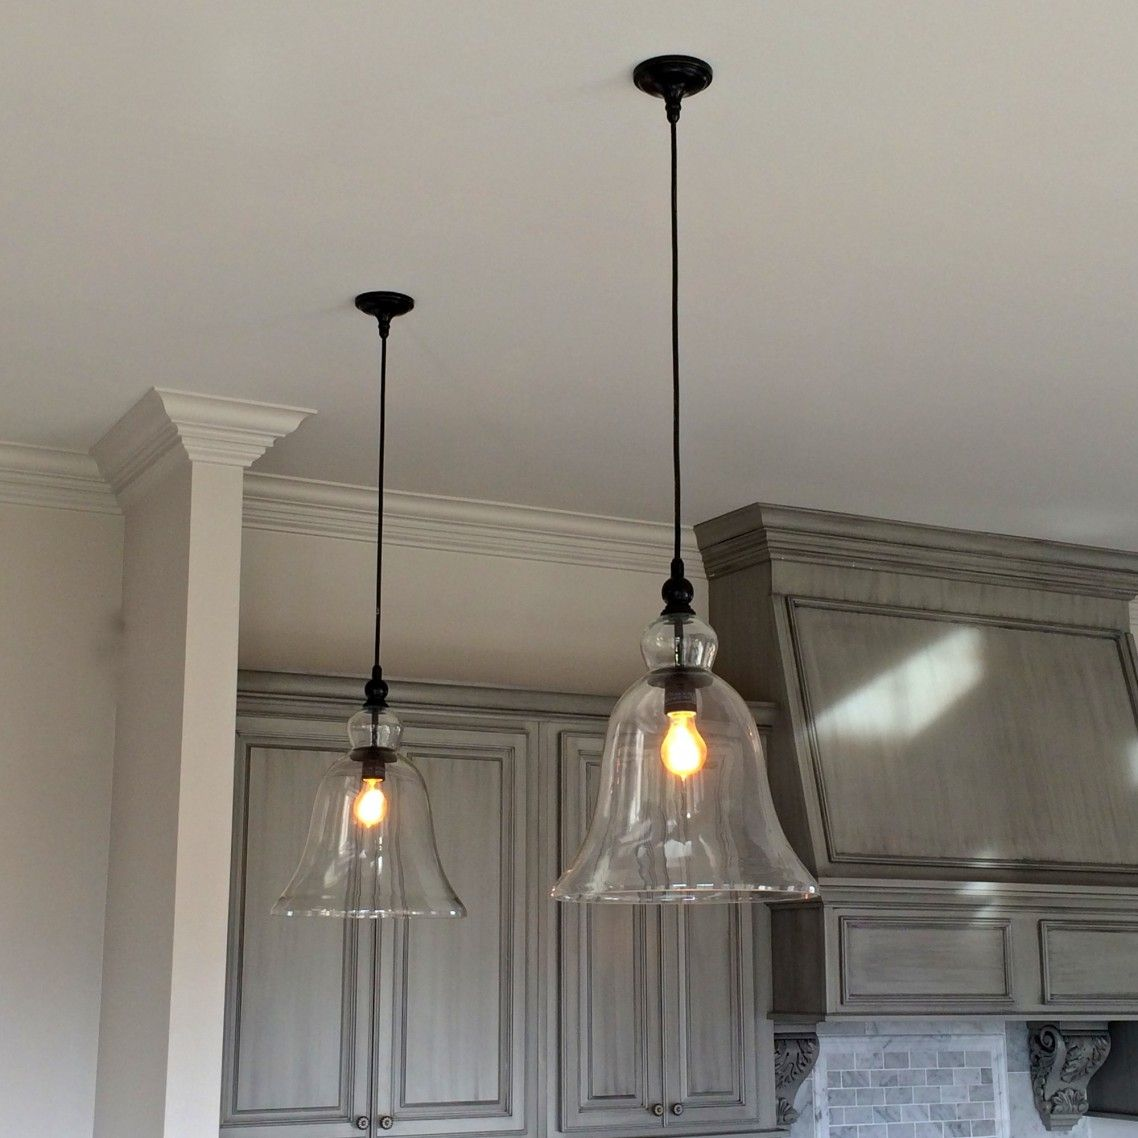 1000 images about home lighting on pinterest lowes bronze bathroom and glass pendants awesome designing clear glass mini pendant lights